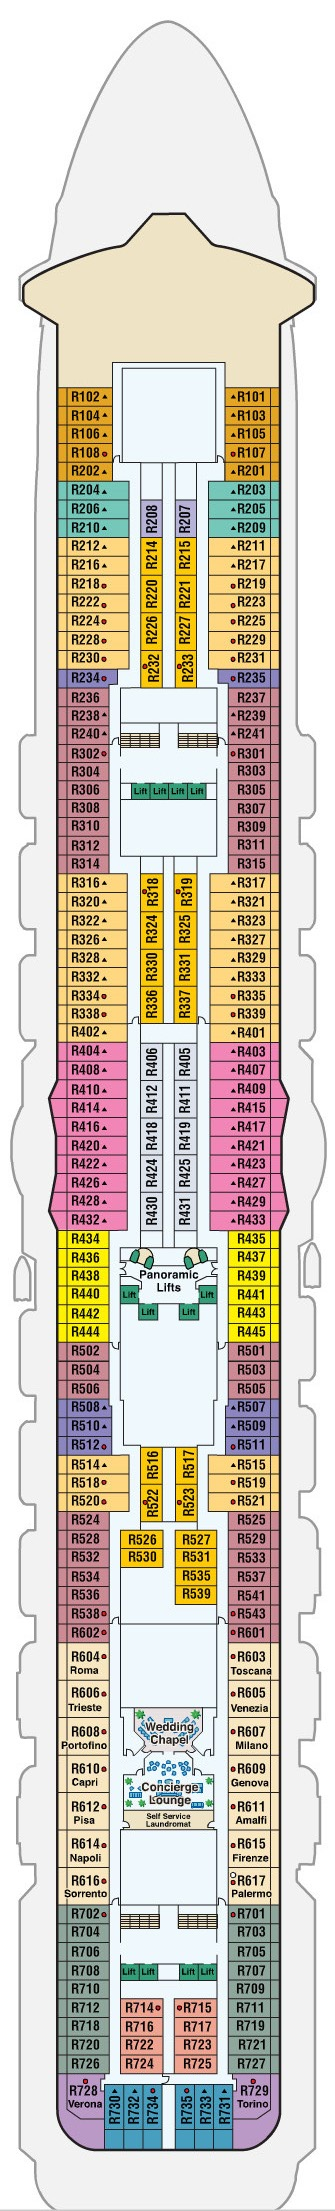 Regal Princess Deck 14 - Riviera layout